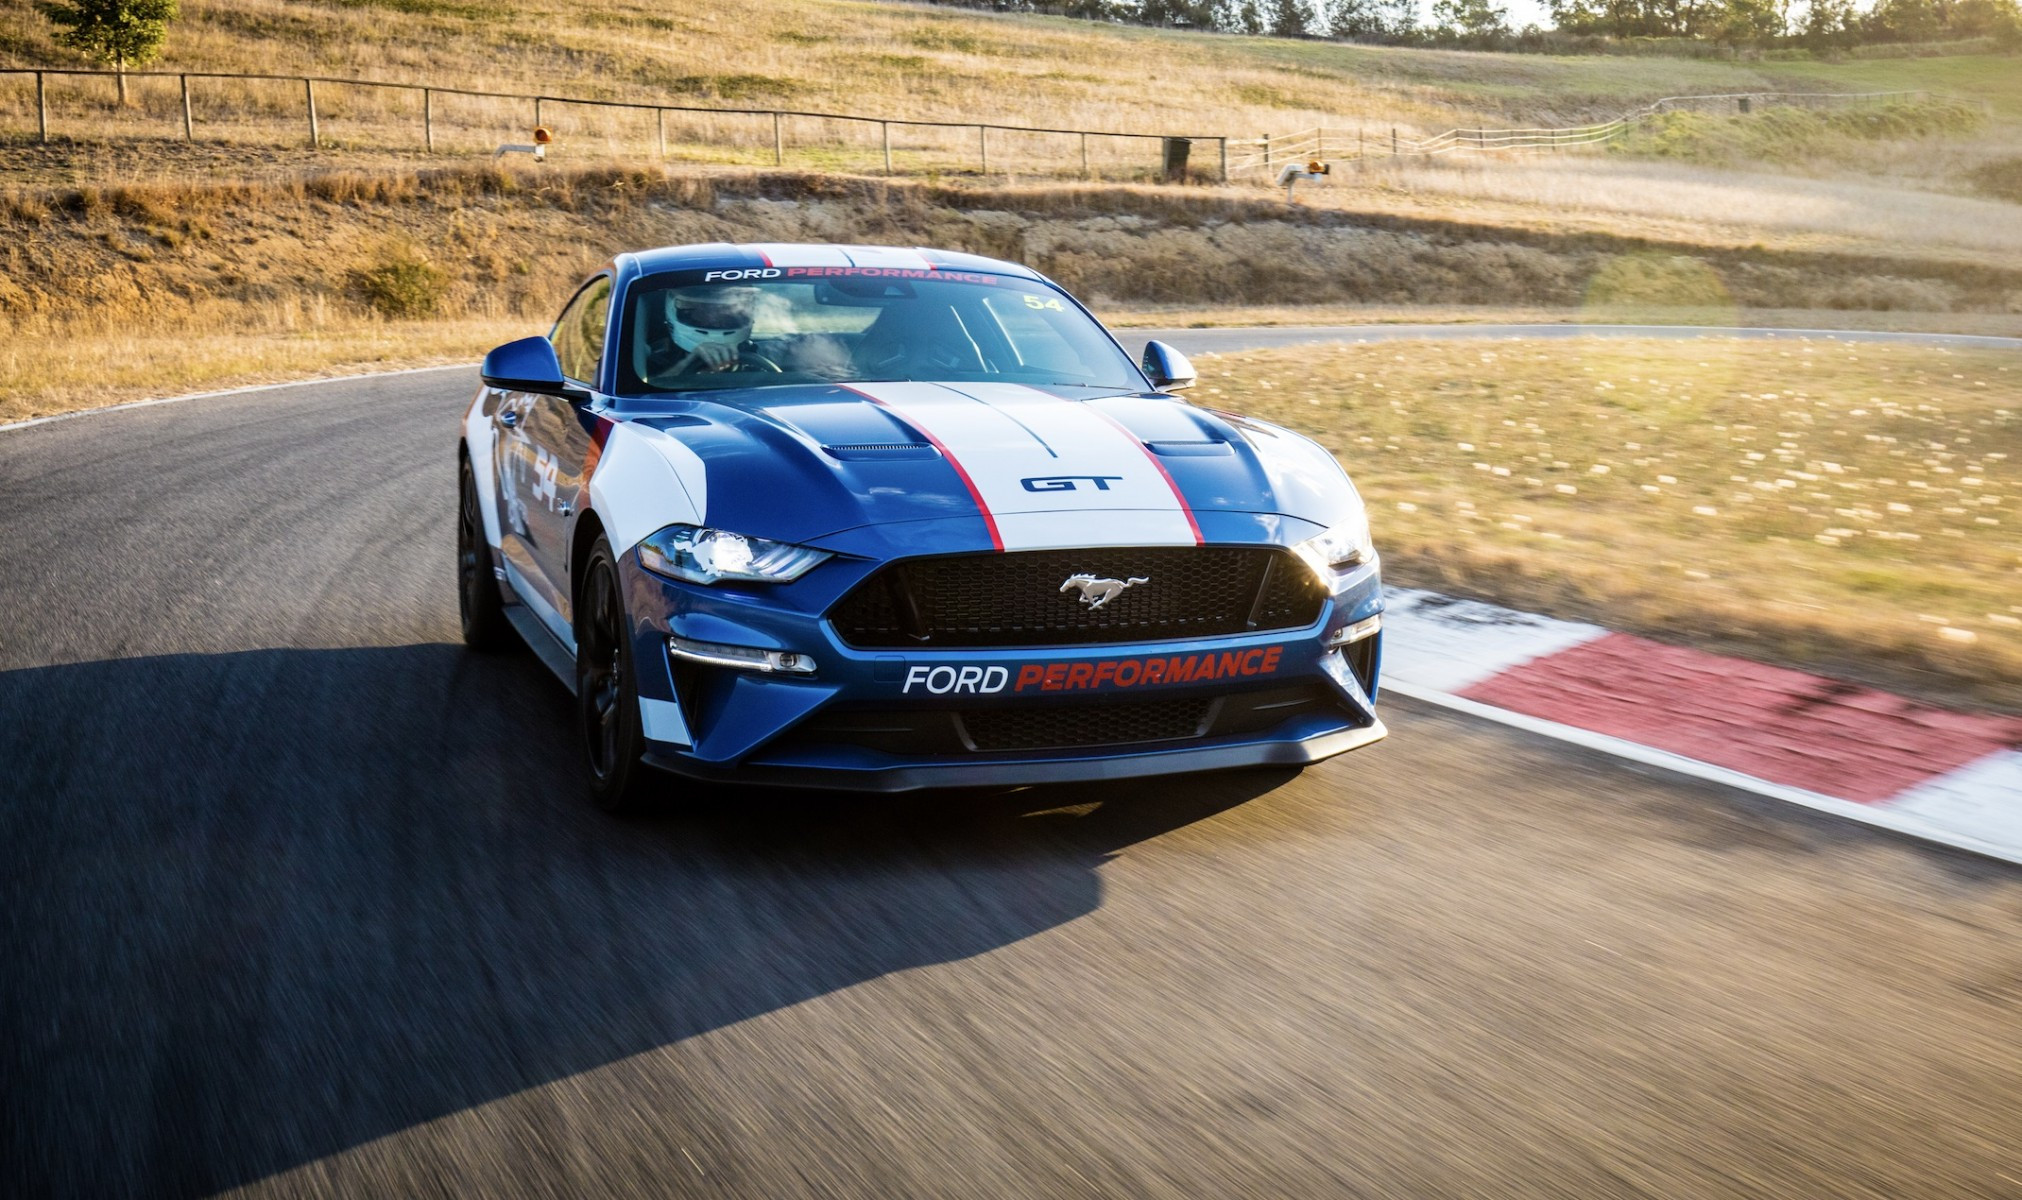 Ford confirm Supercars return with Mustang model for 2019 ...